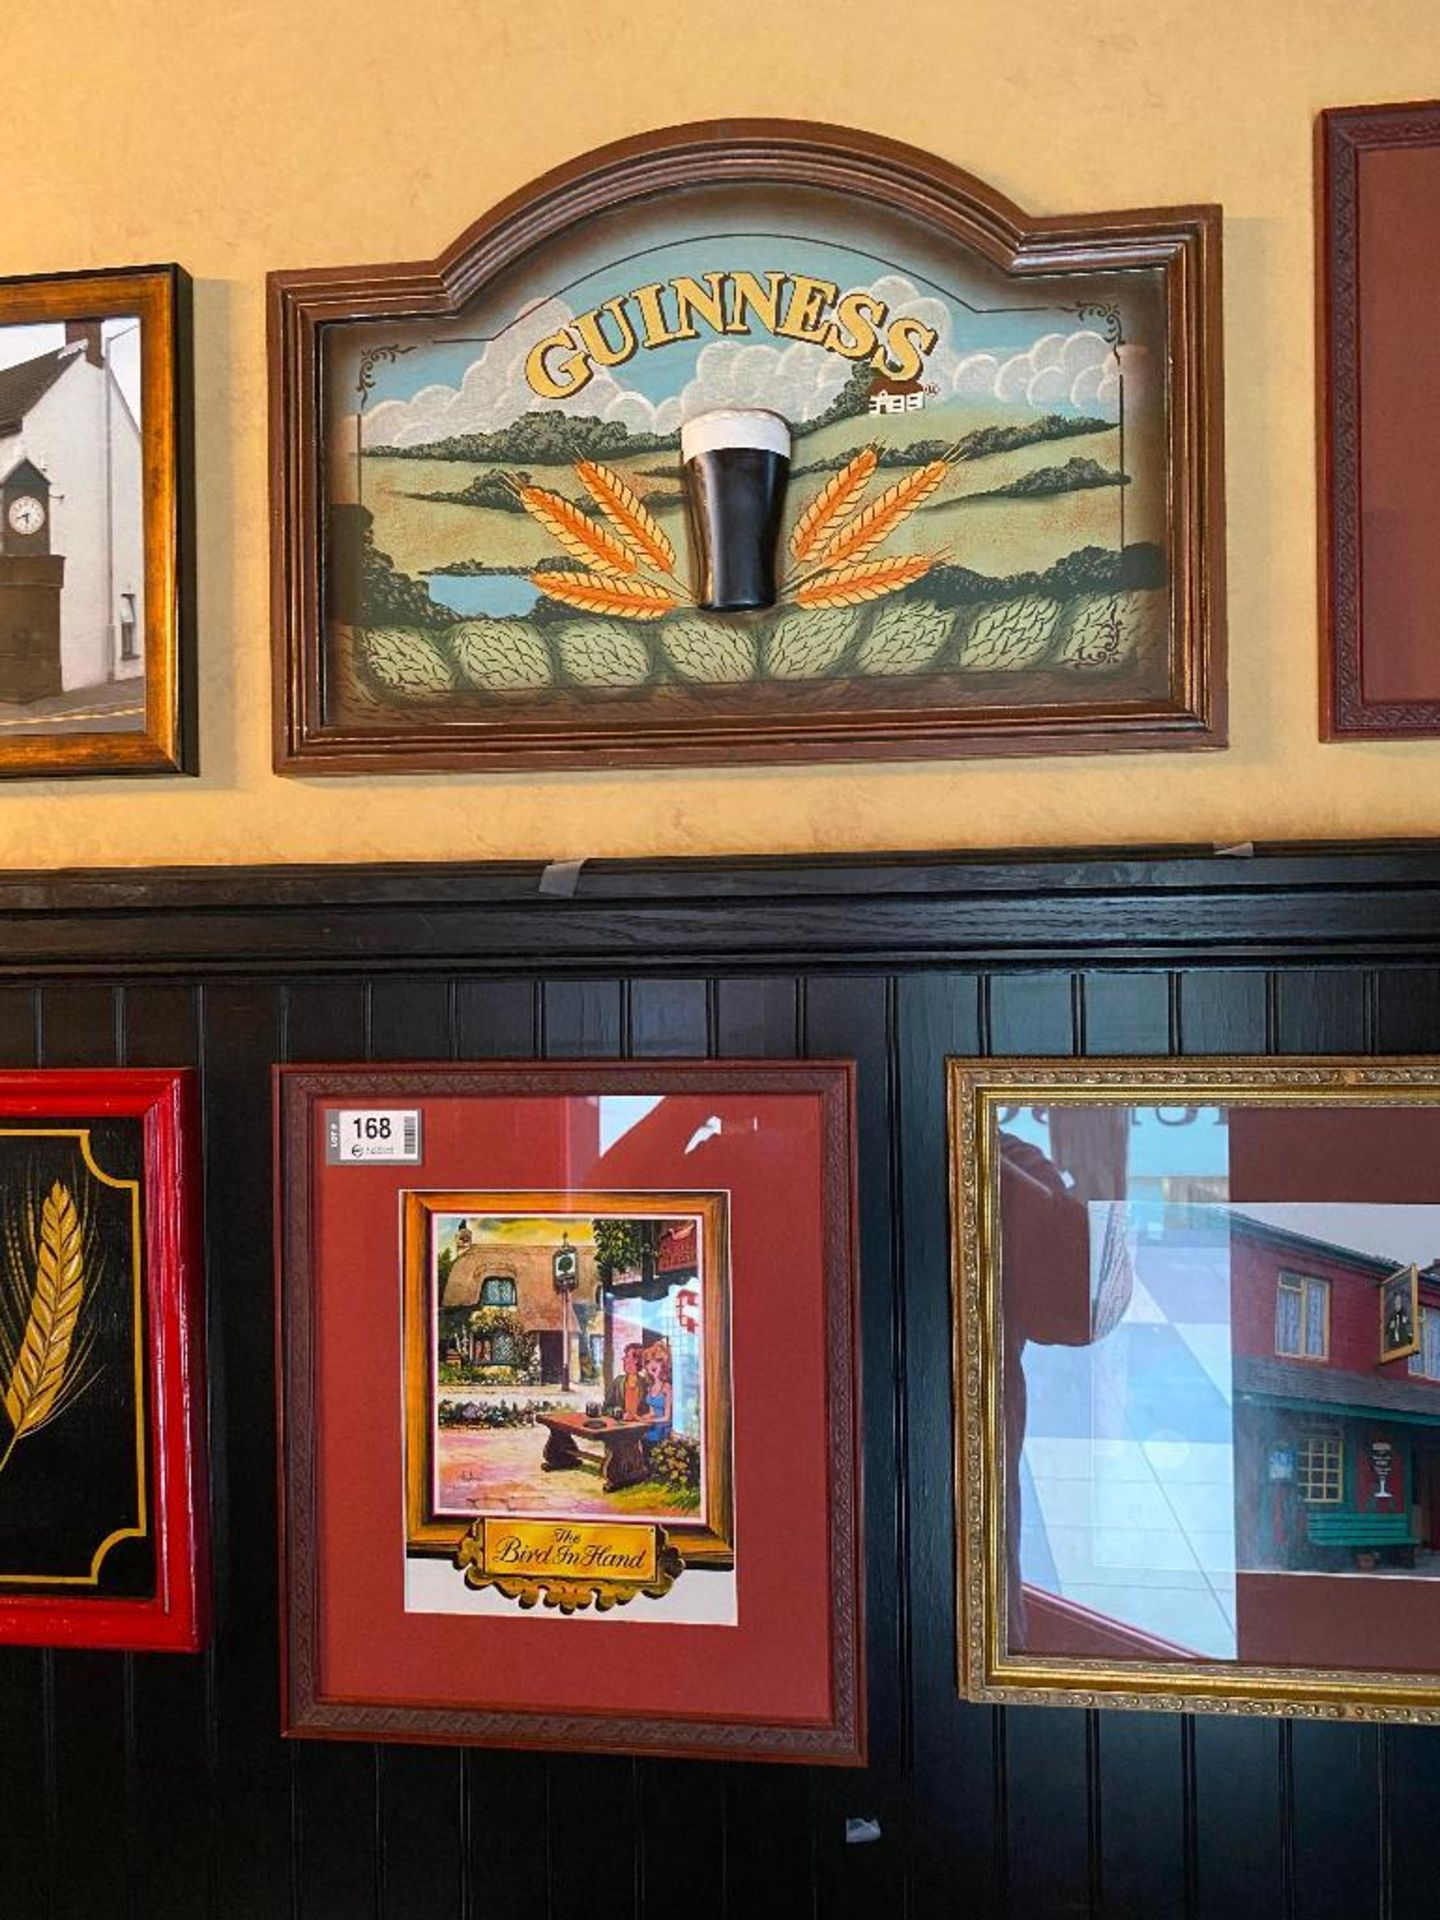 LOT OF (7) FRAMED MEMORABILIA PHOTOS & (2) WOODEN GUINNESS PLAQUES - NOTE REQUIRES REMOVAL FROM WALL - Image 4 of 5